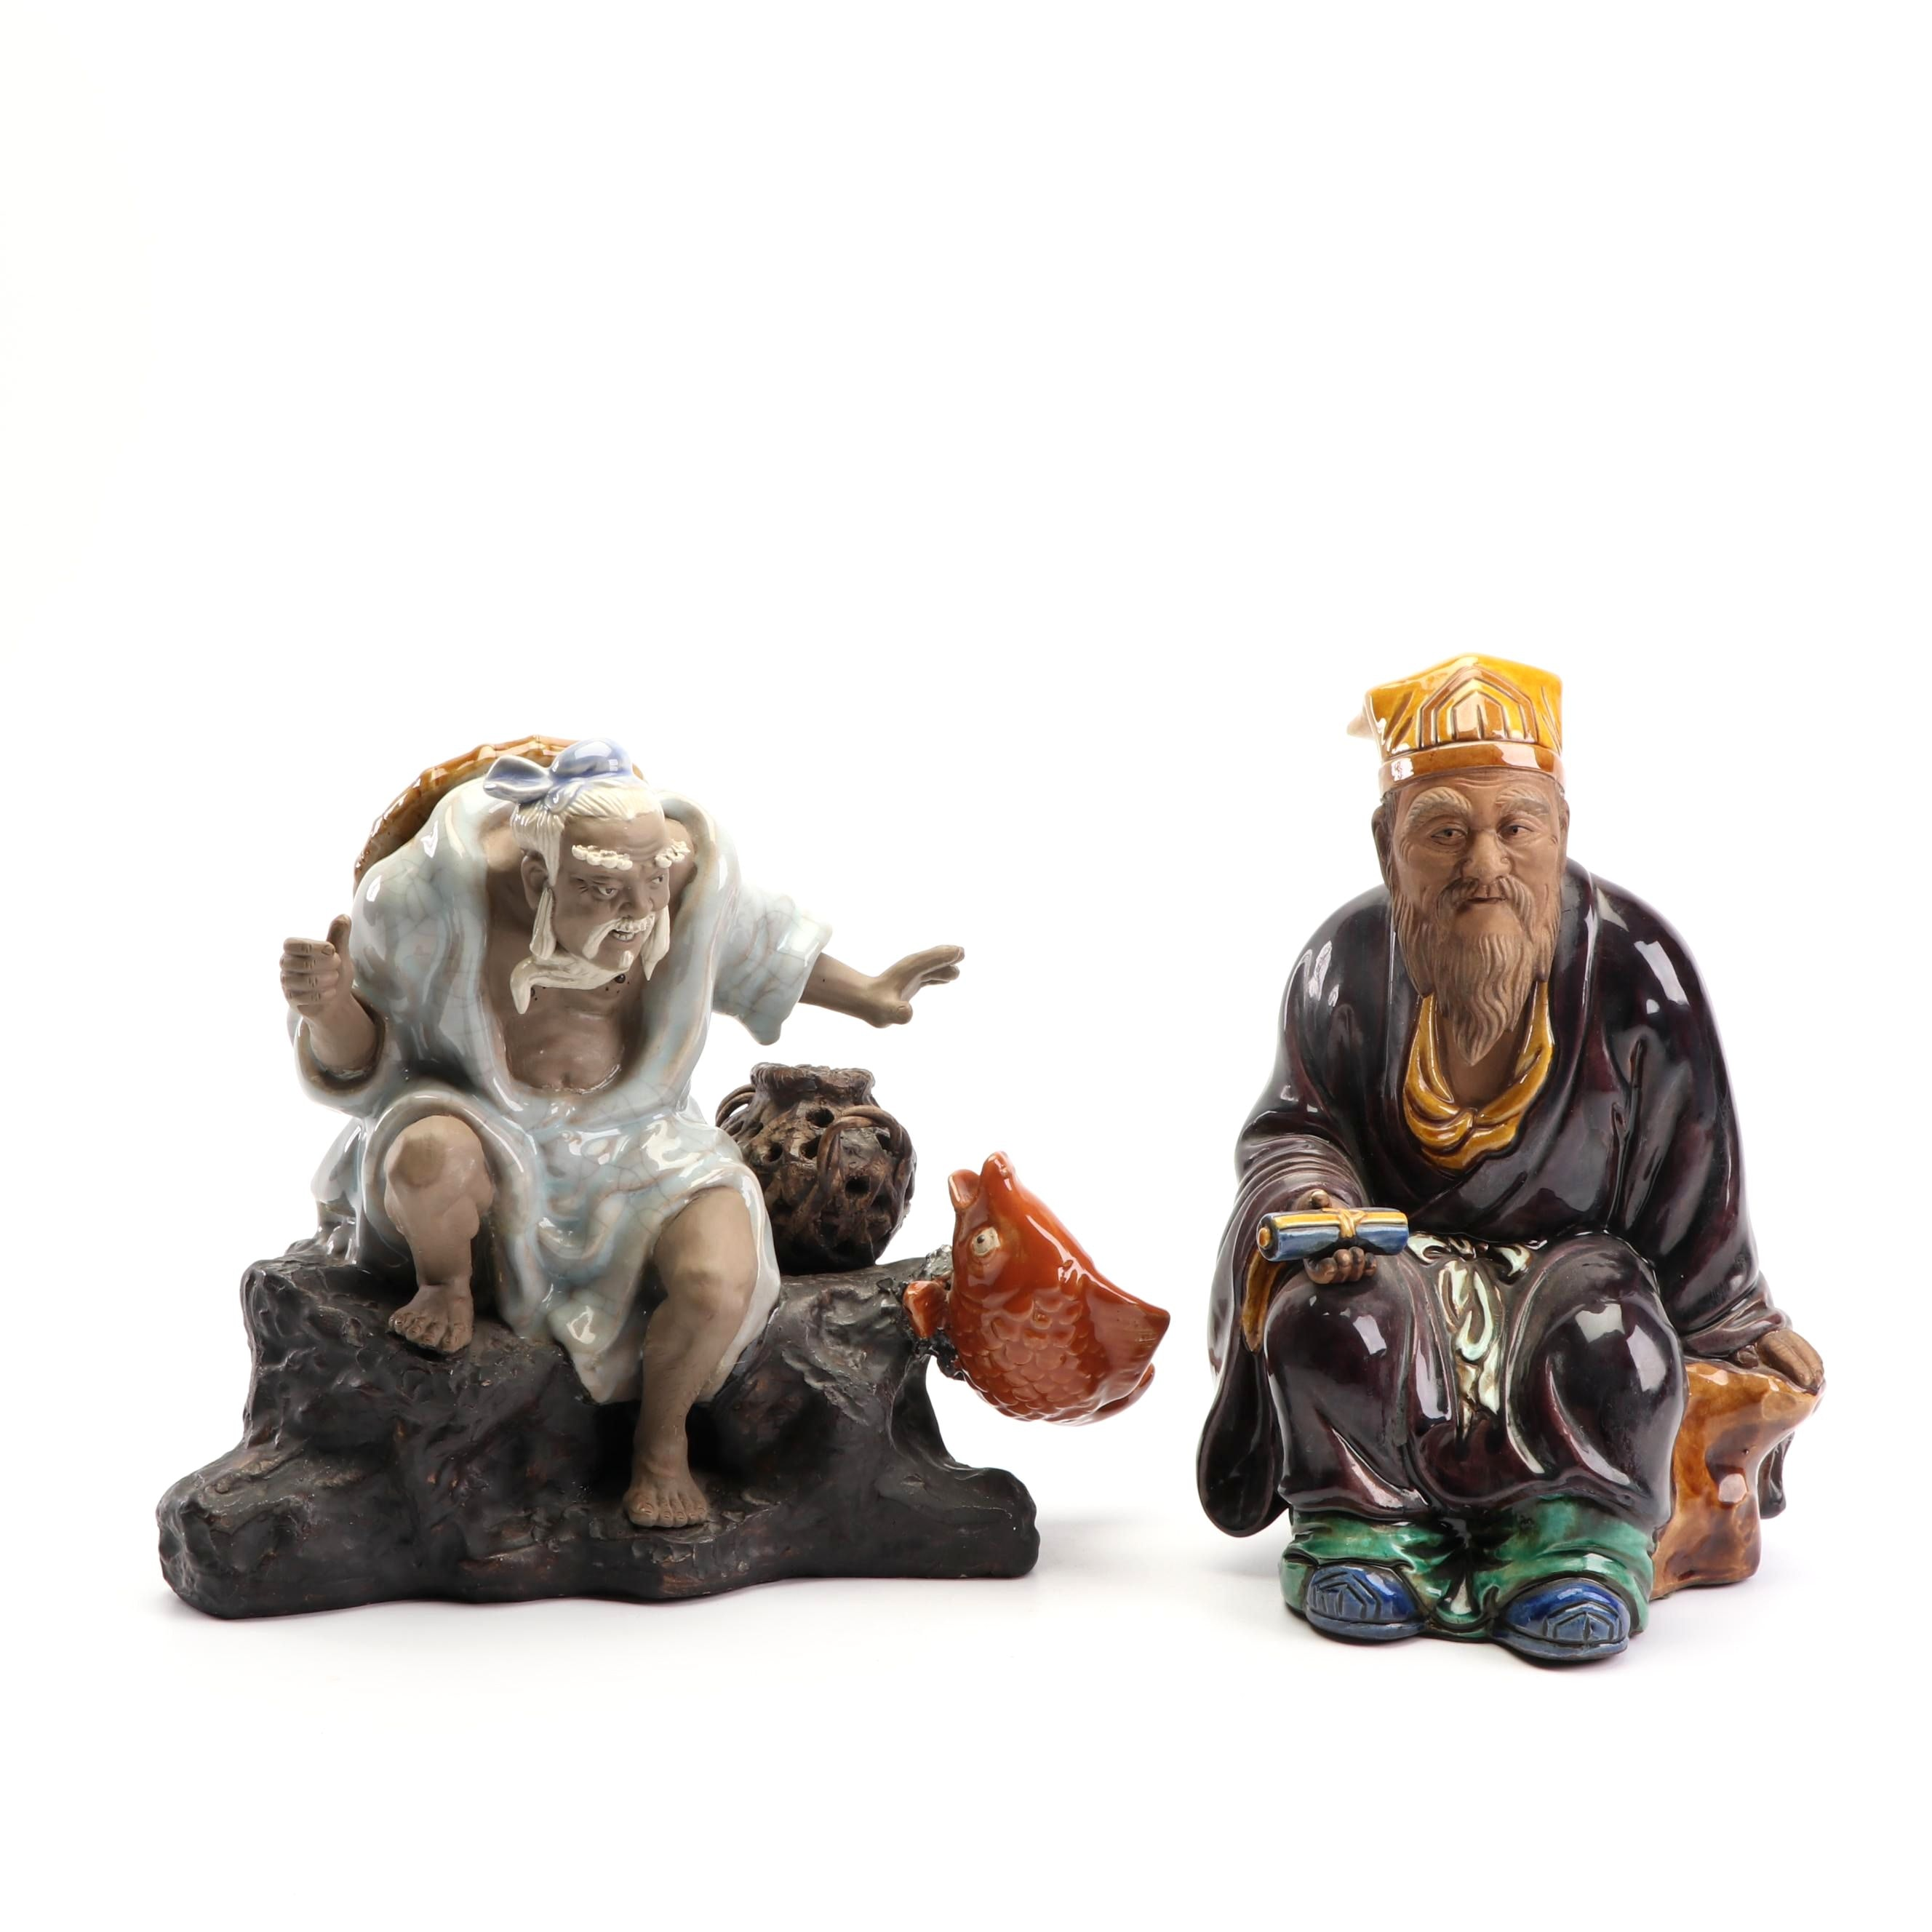 East Asian Earthenware Figurines